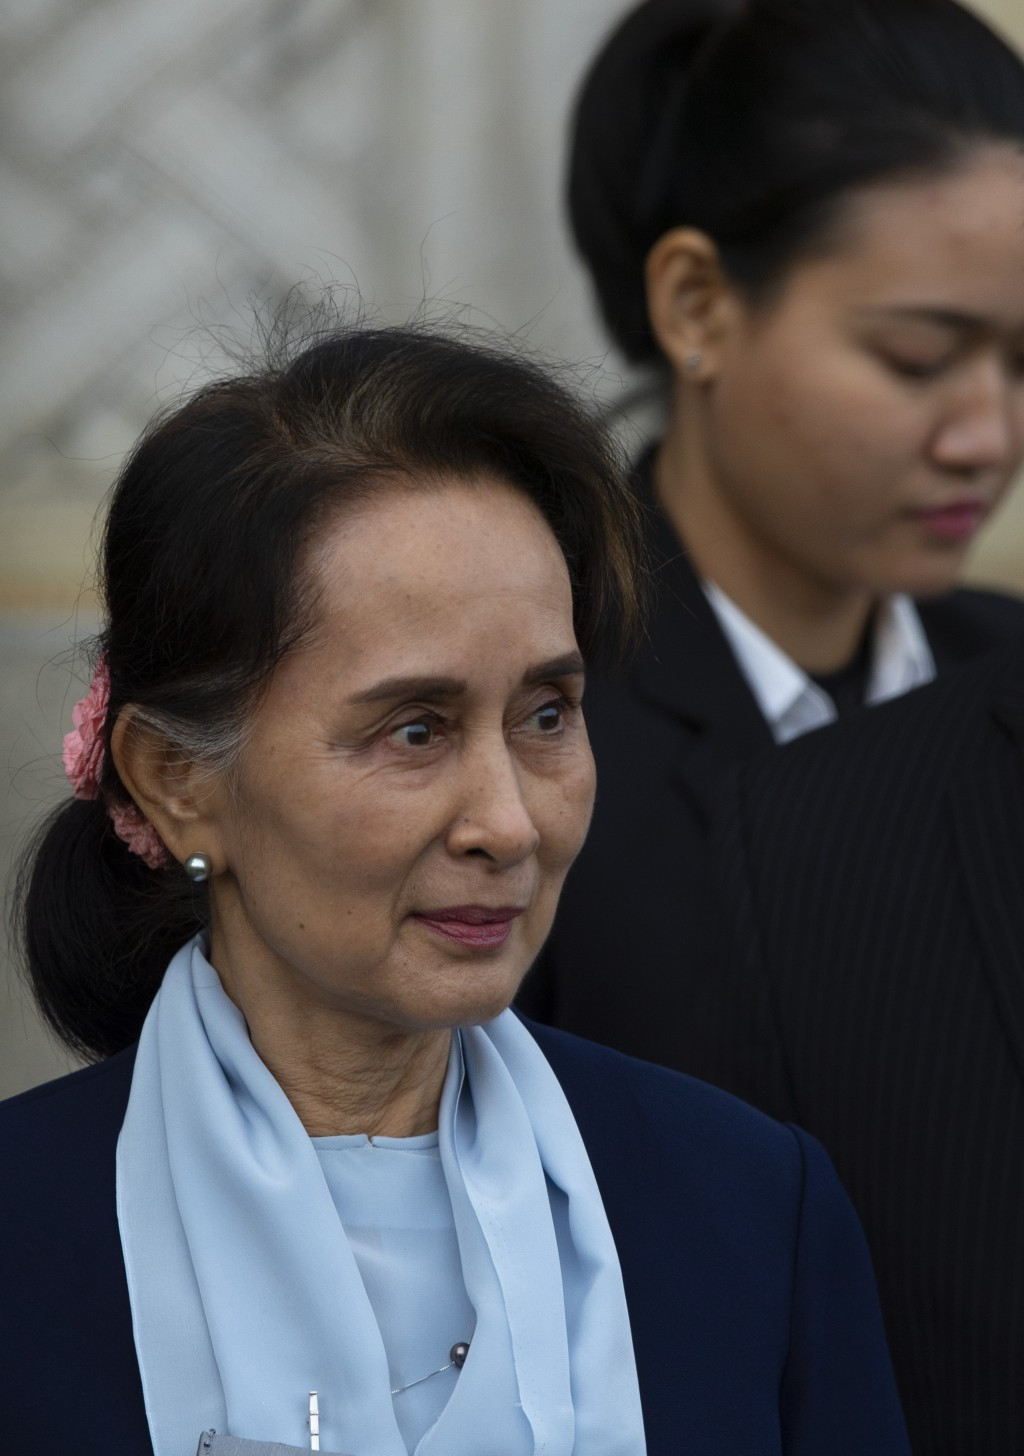 Myanmar's leader Aung San Suu Kyi leaves the International Court of Justice after addressing judges on the second day of three days of hearings in The...